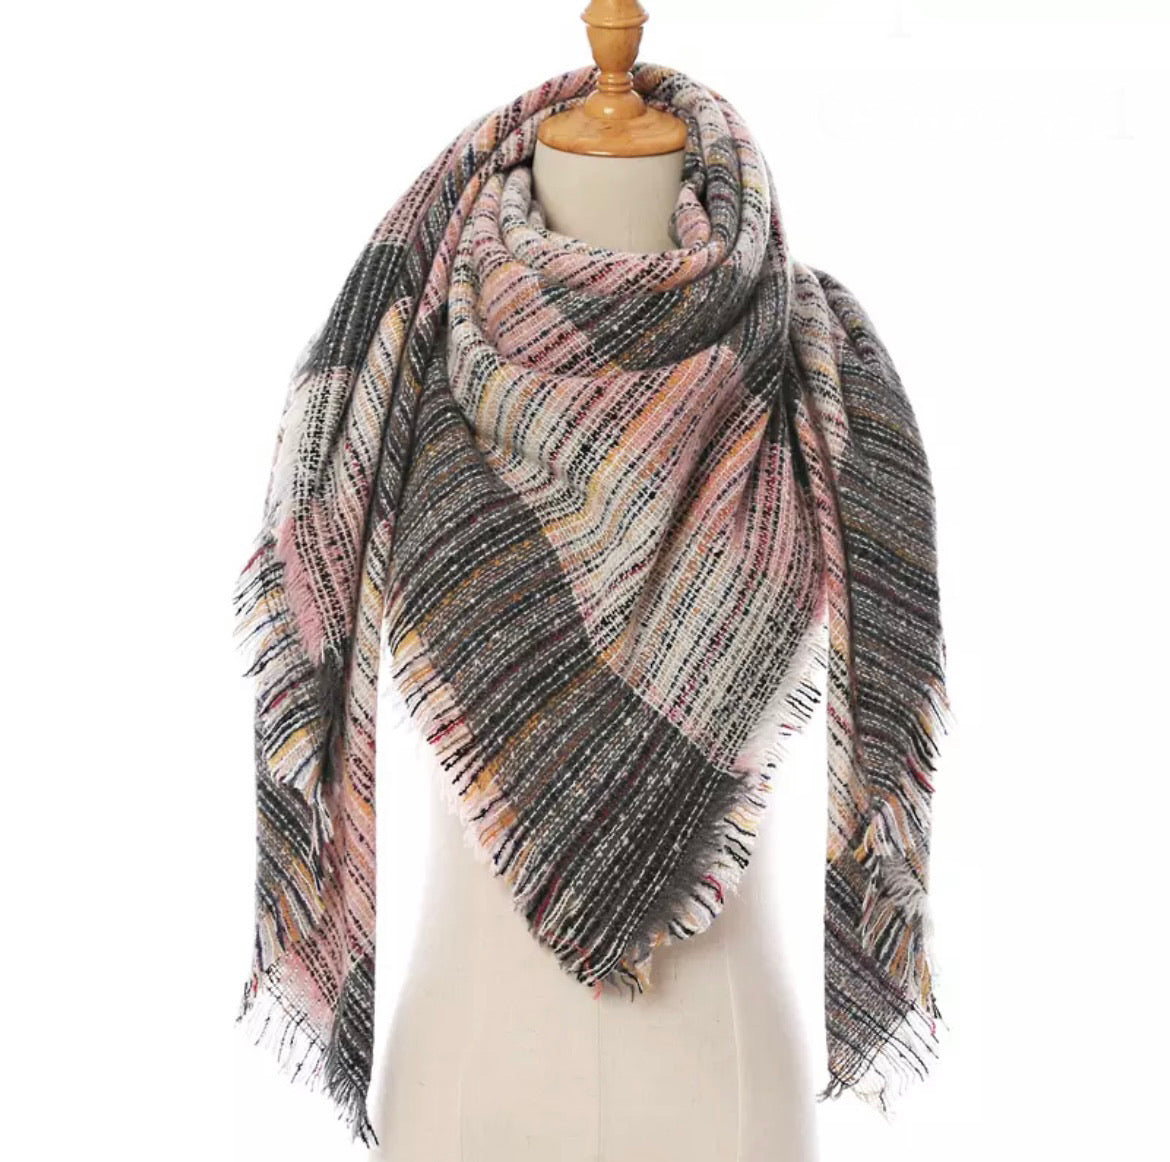 Kaleidoscope Lt Pink Gray White Stripe Plaid Triangle Blanket Scarf